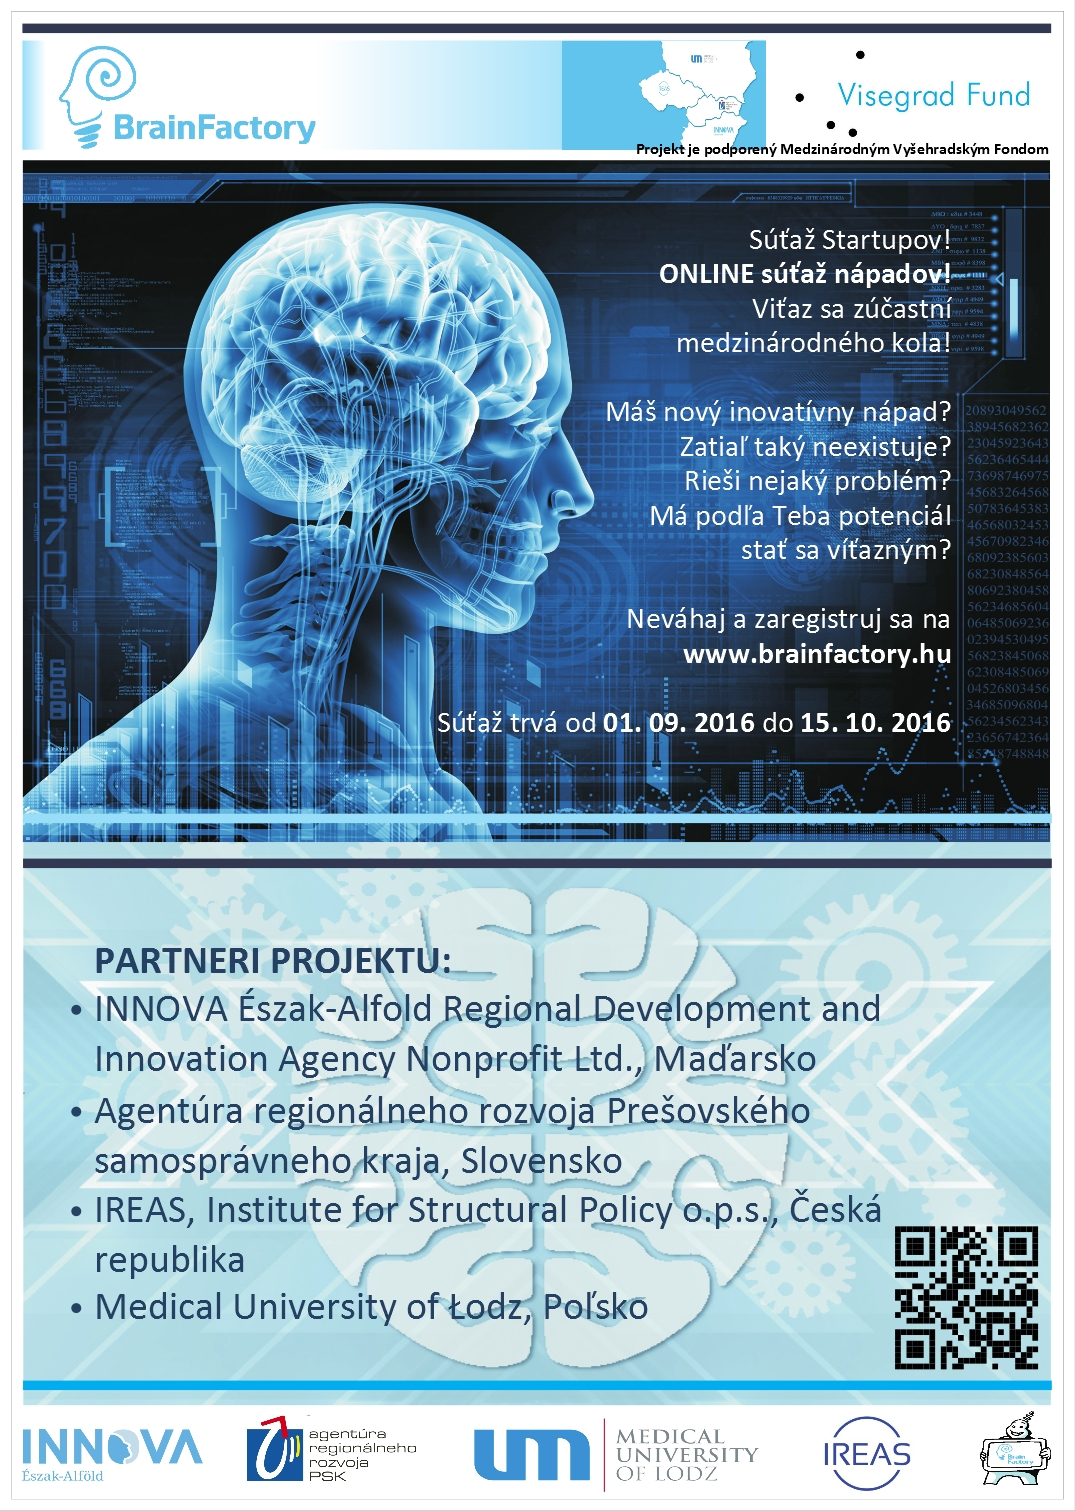 brainfactory_poster